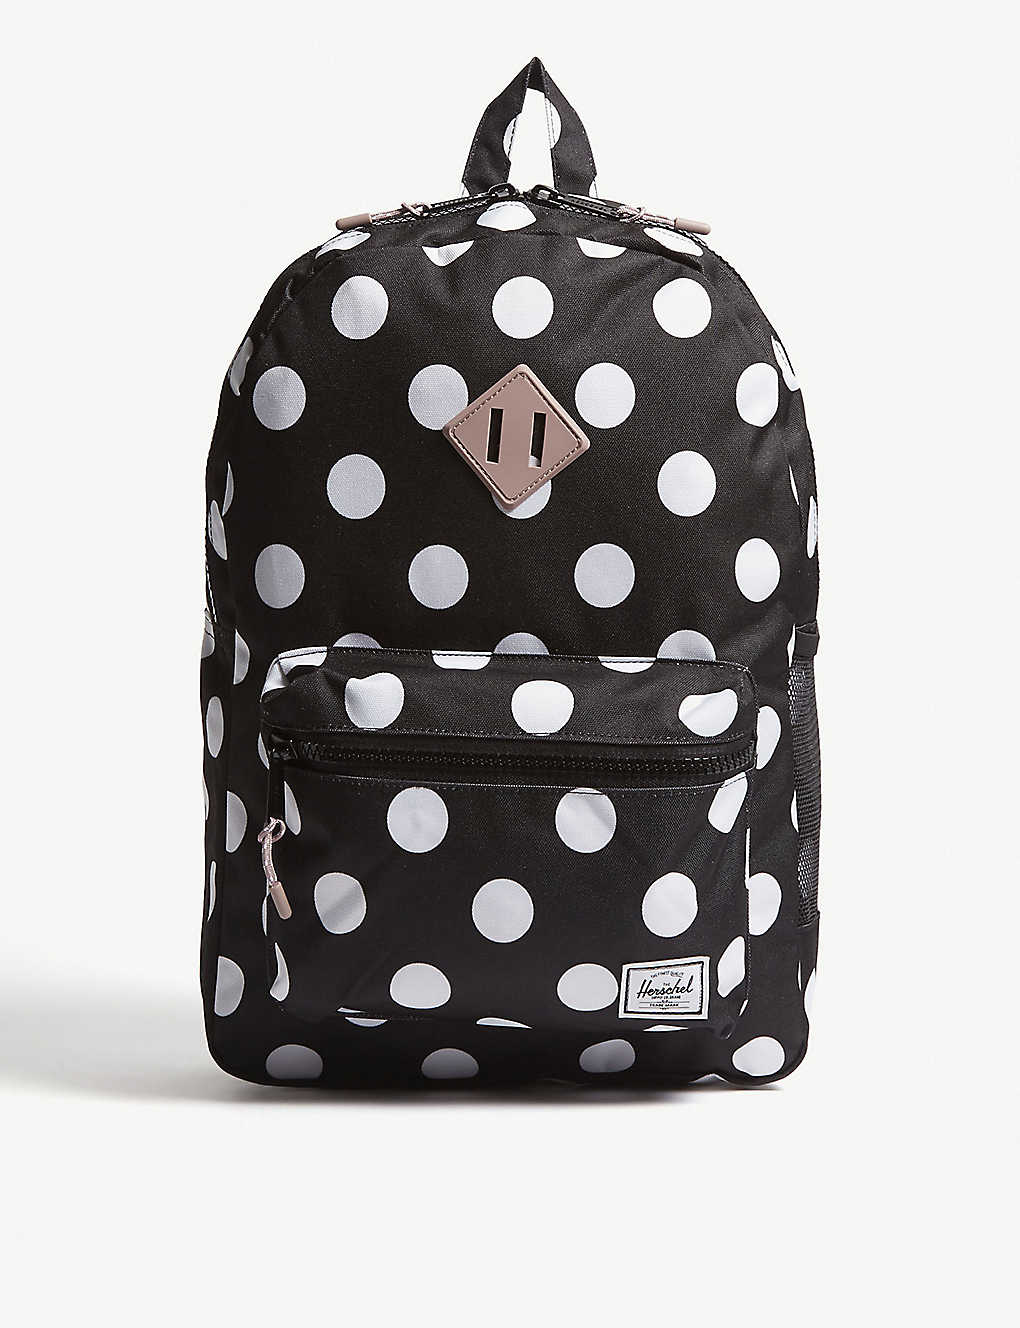 9c6758ae87 HERSCHEL SUPPLY CO - Heritage Youth XL polka-dot backpack ...